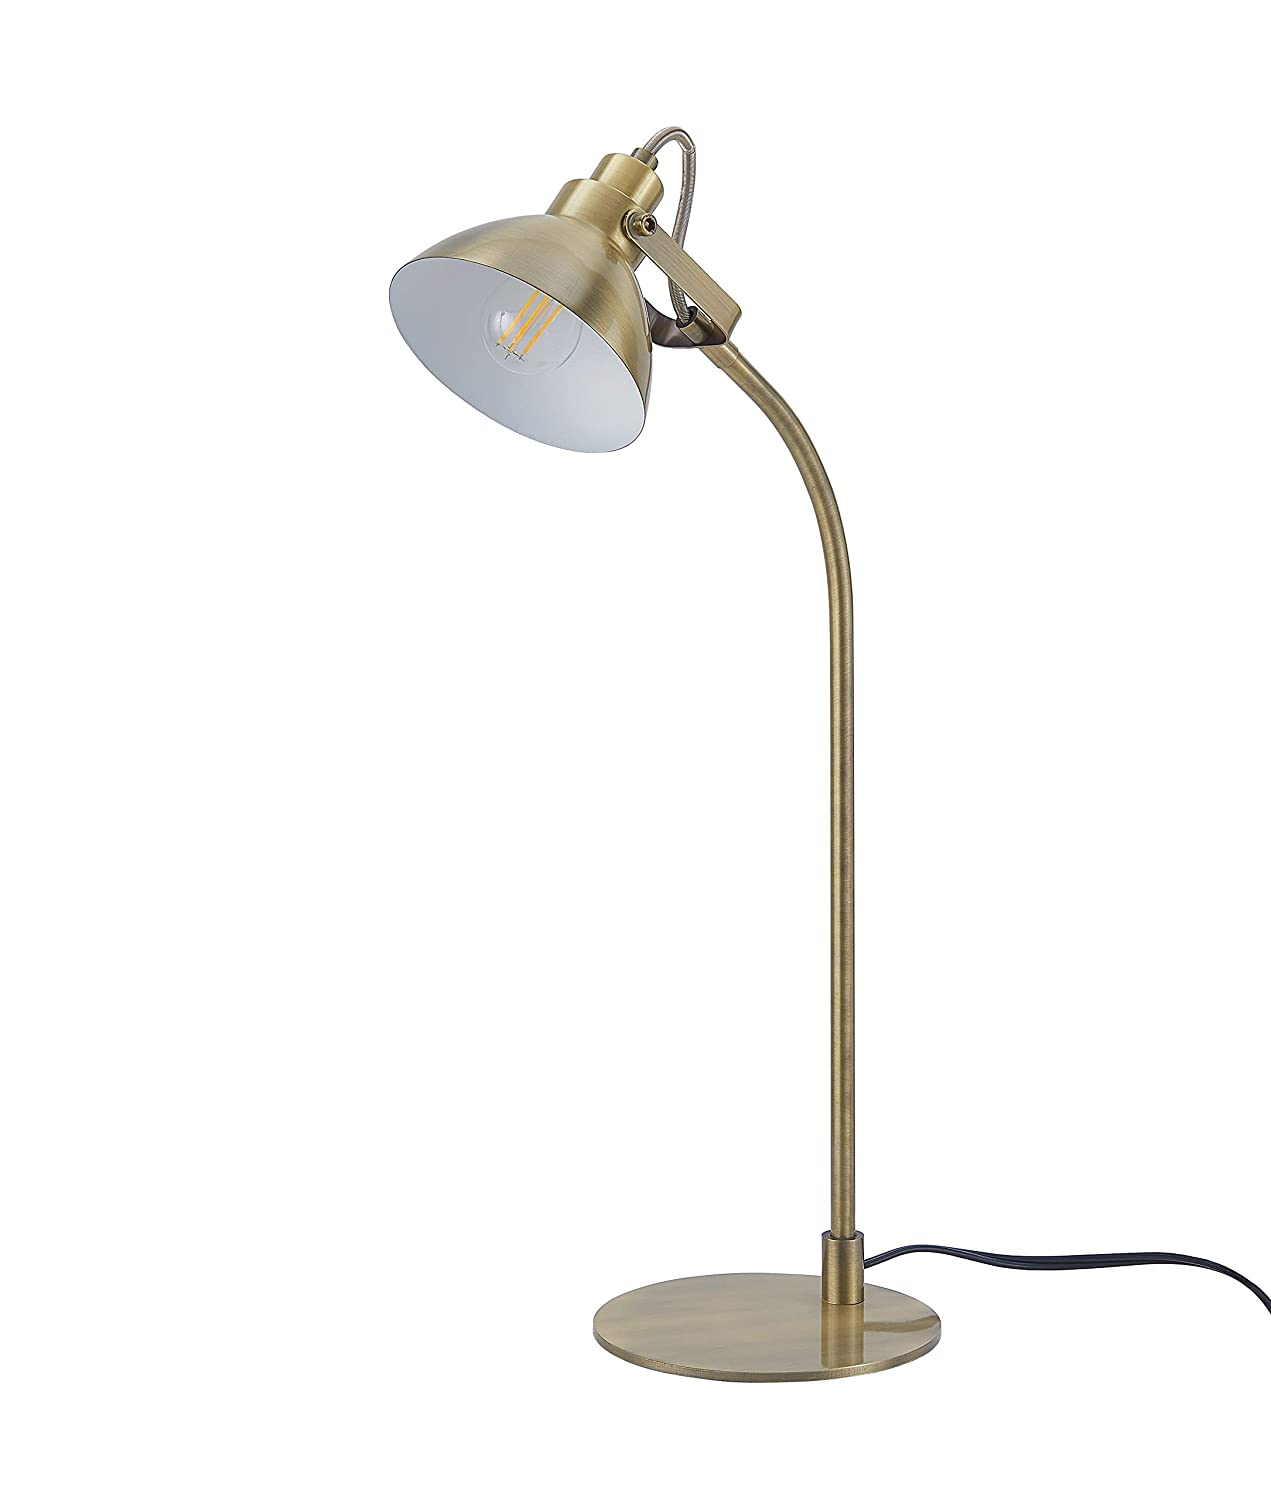 Archiology Ottone Desk Lamp, Traditional Brass Plated Table Light and Lampshade, Simple Fixture for Home Office Studio, 22""